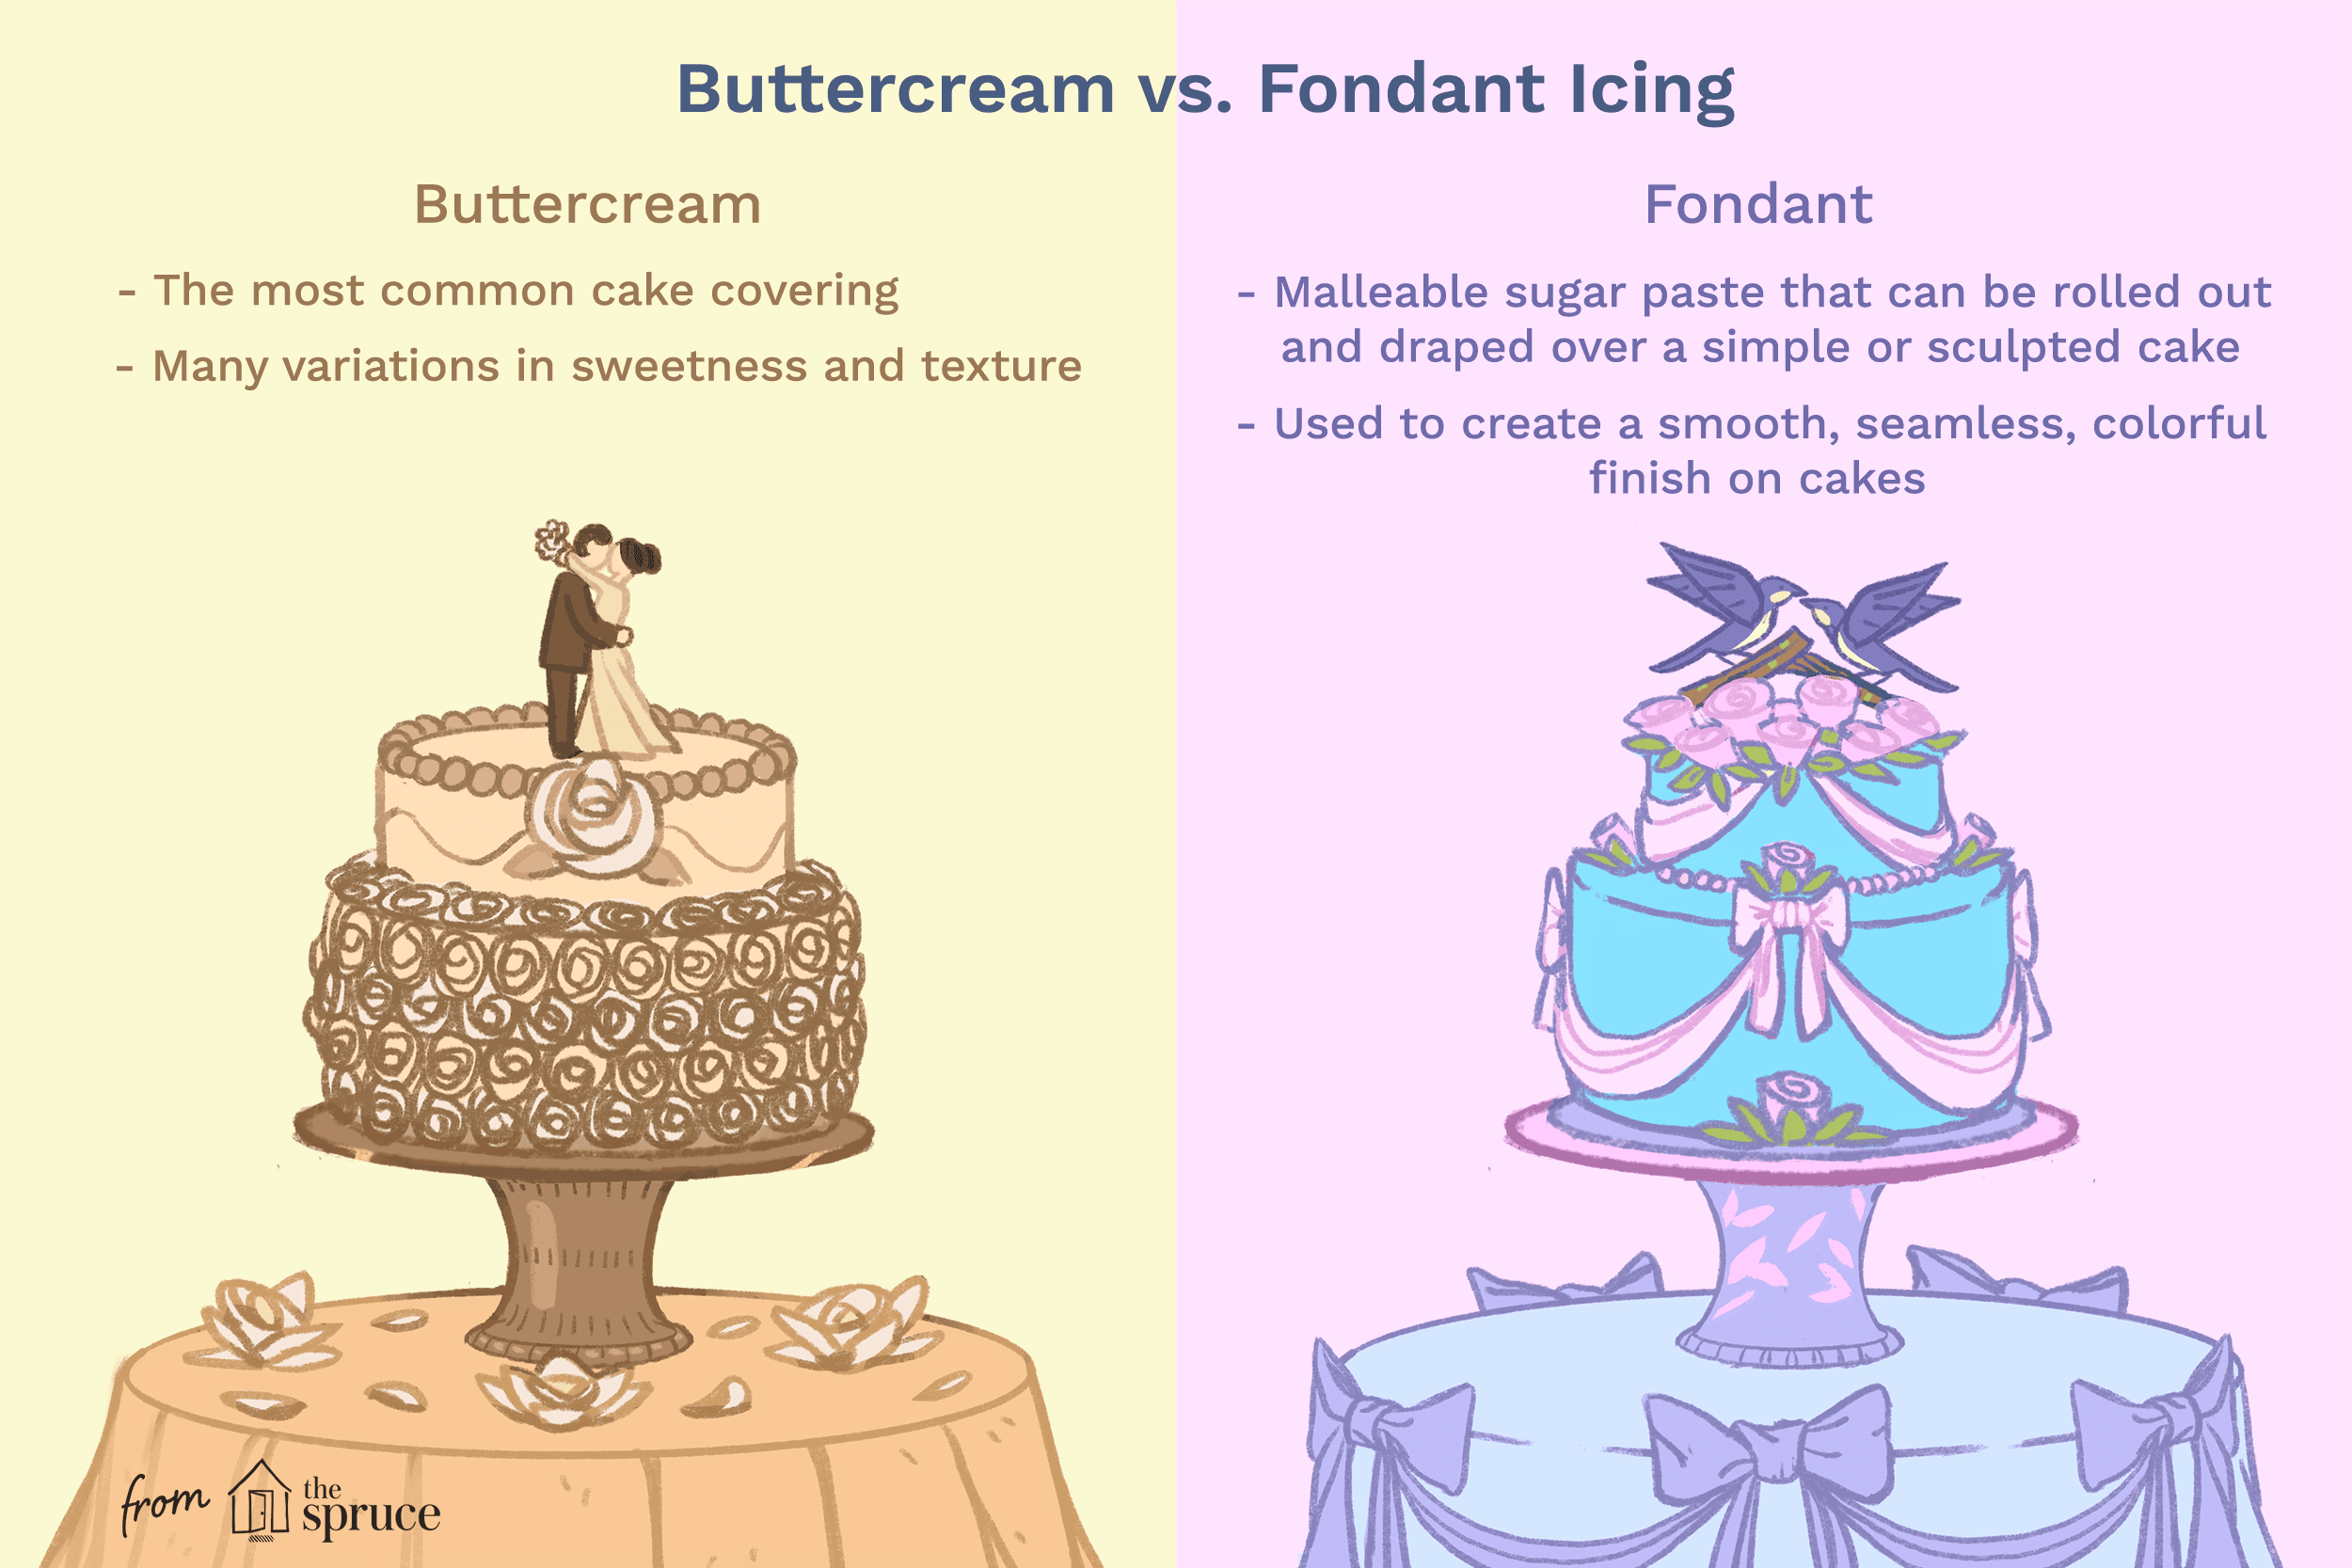 The Difference Between Buttercream and Fondant Cakes